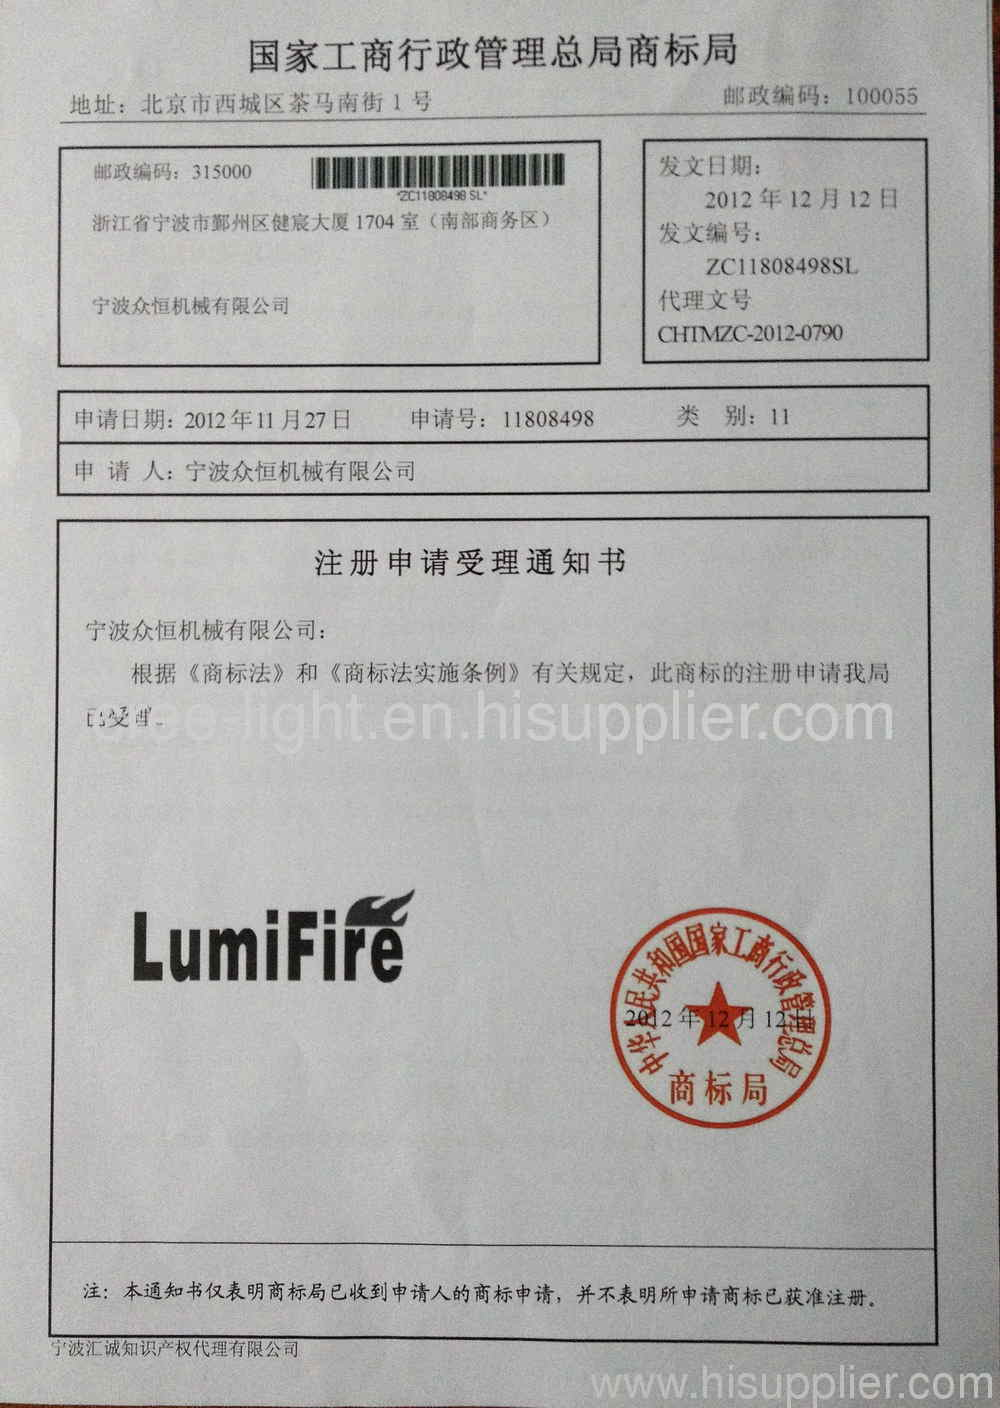 Congratulations!! Our new brand LumiFire~~~